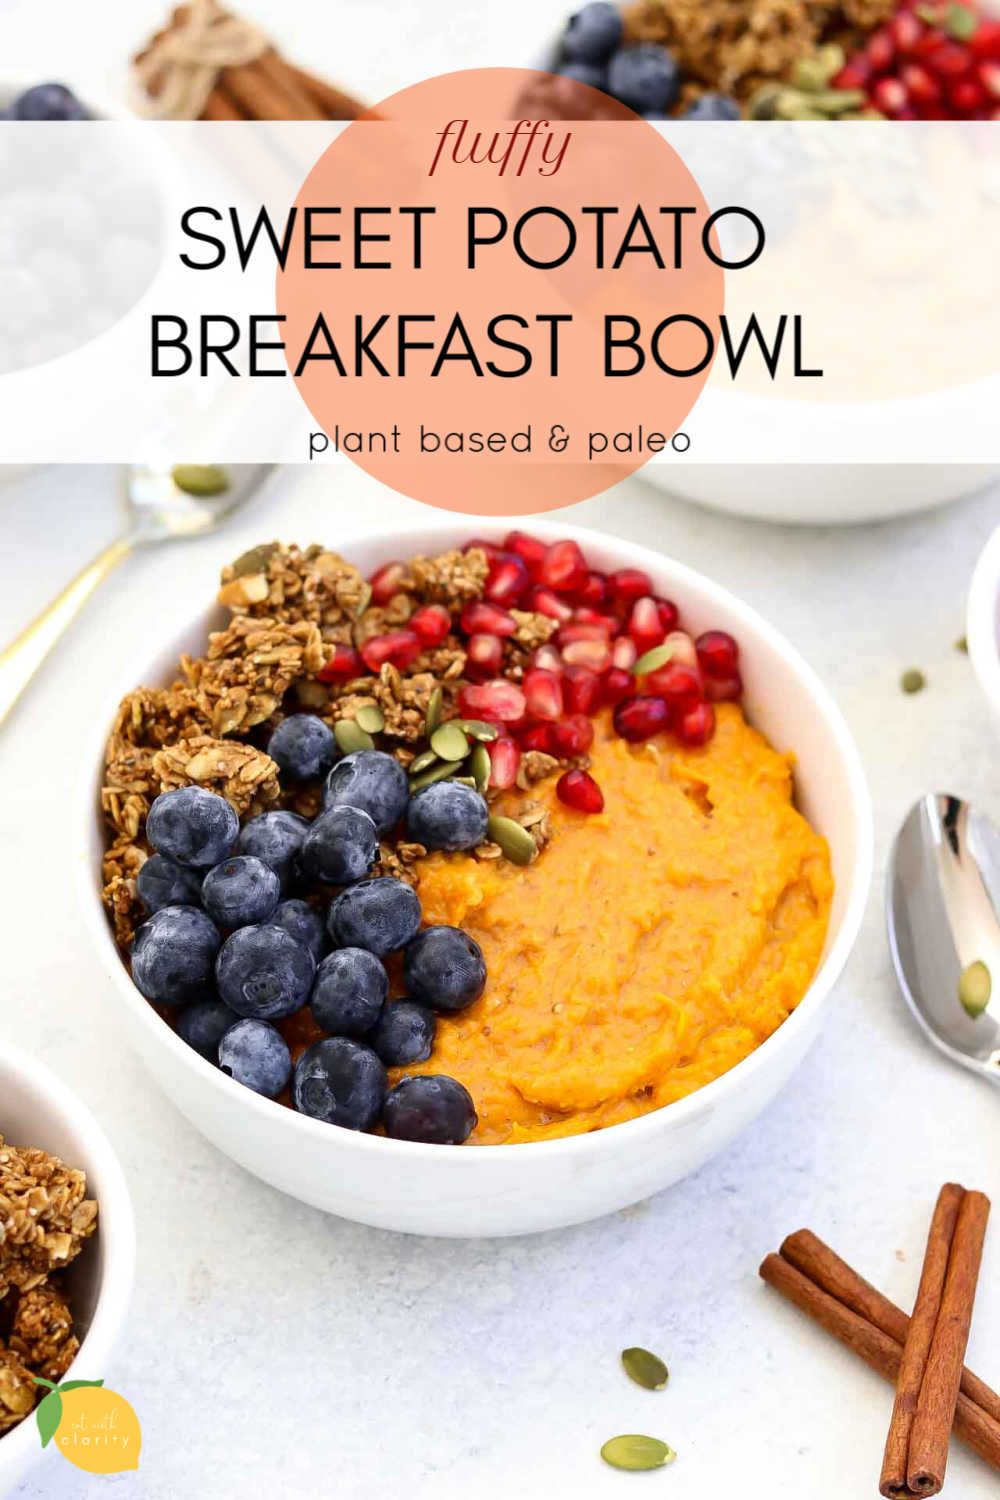 Sweet Potato Breakfast Bowl images